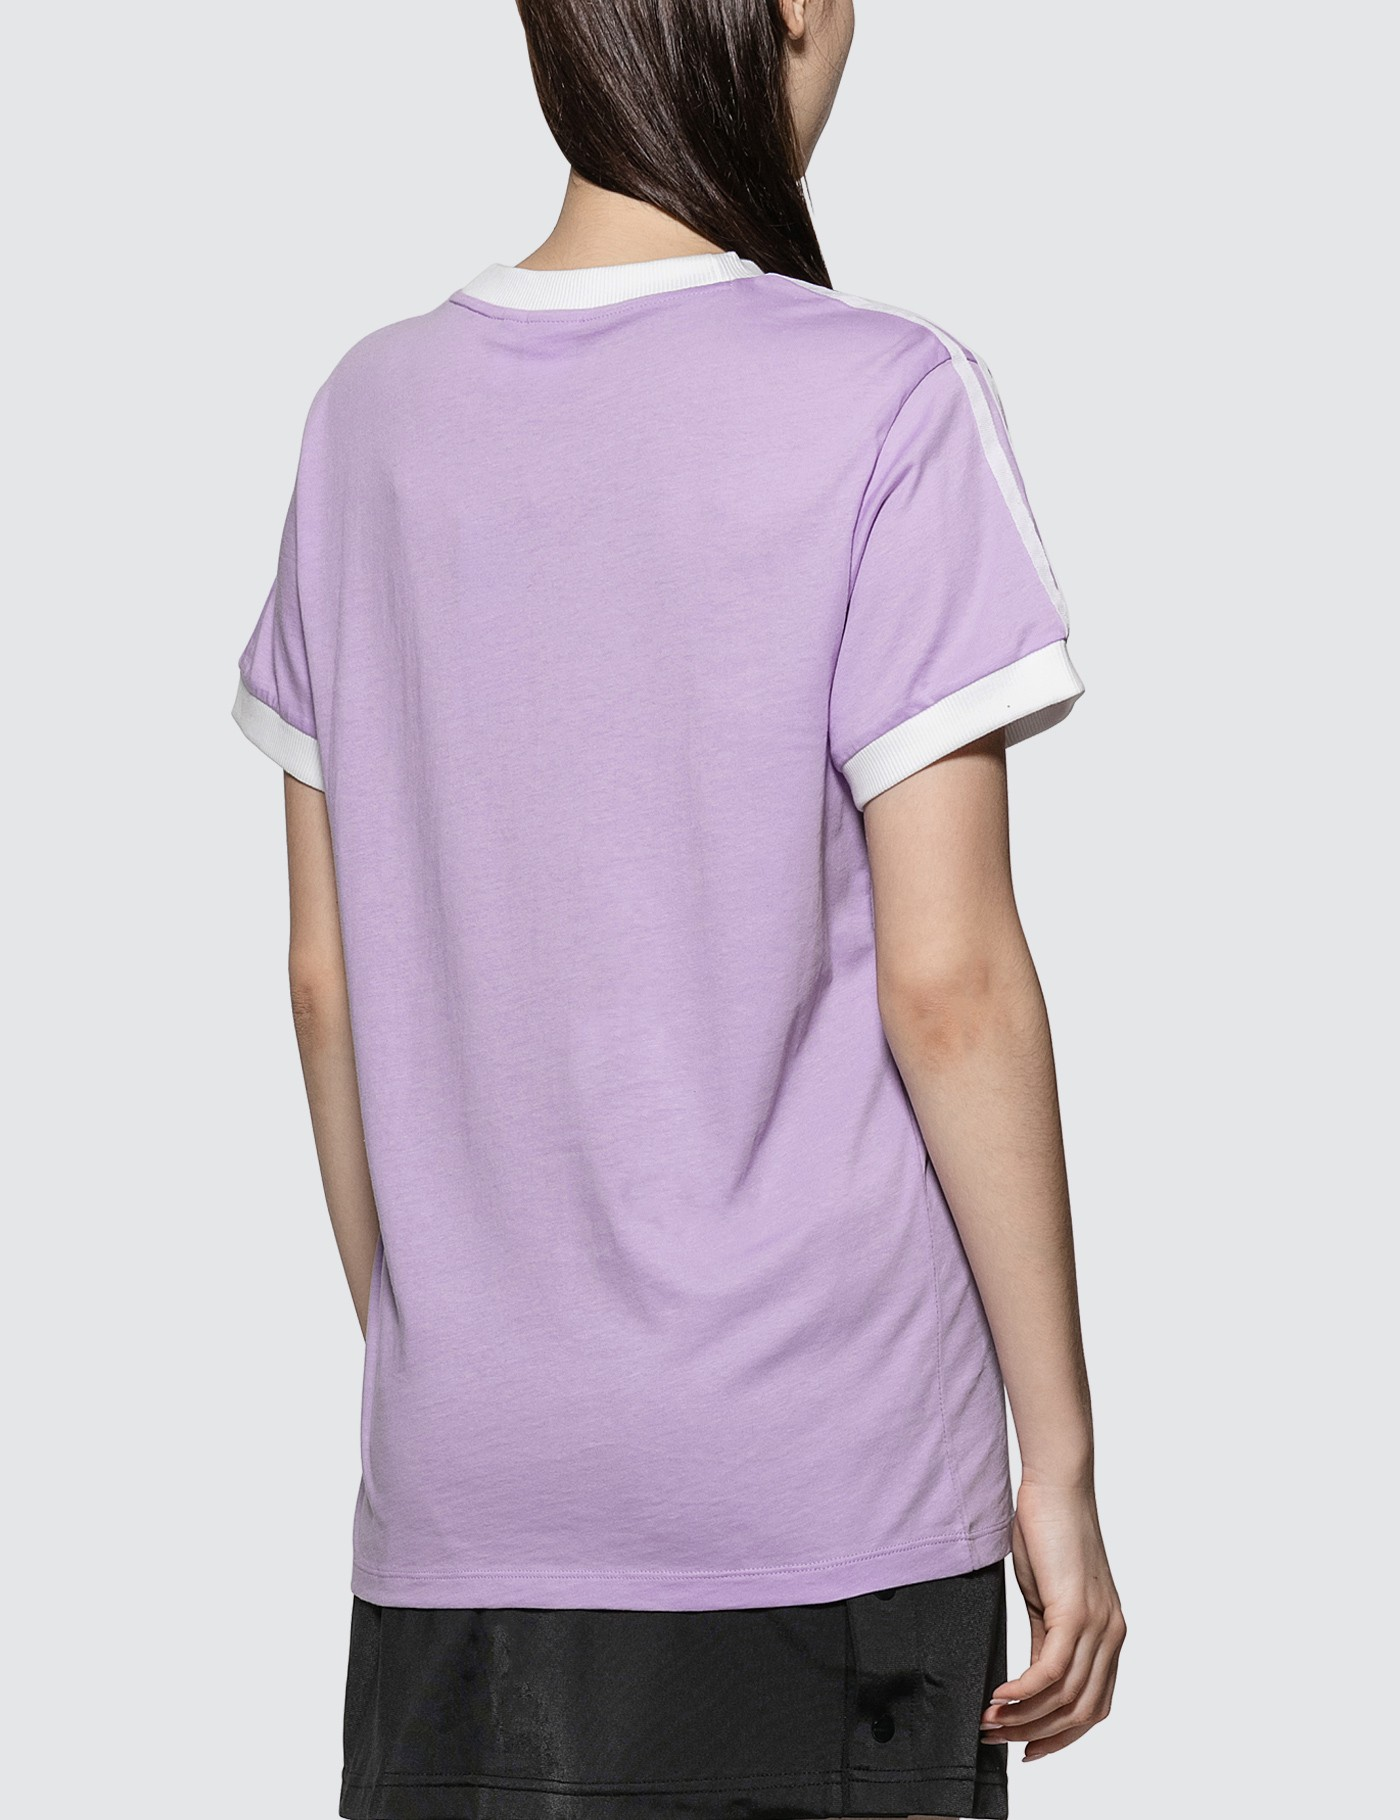 Adidas Originals Soft Purple 3 Stripes T-shirt